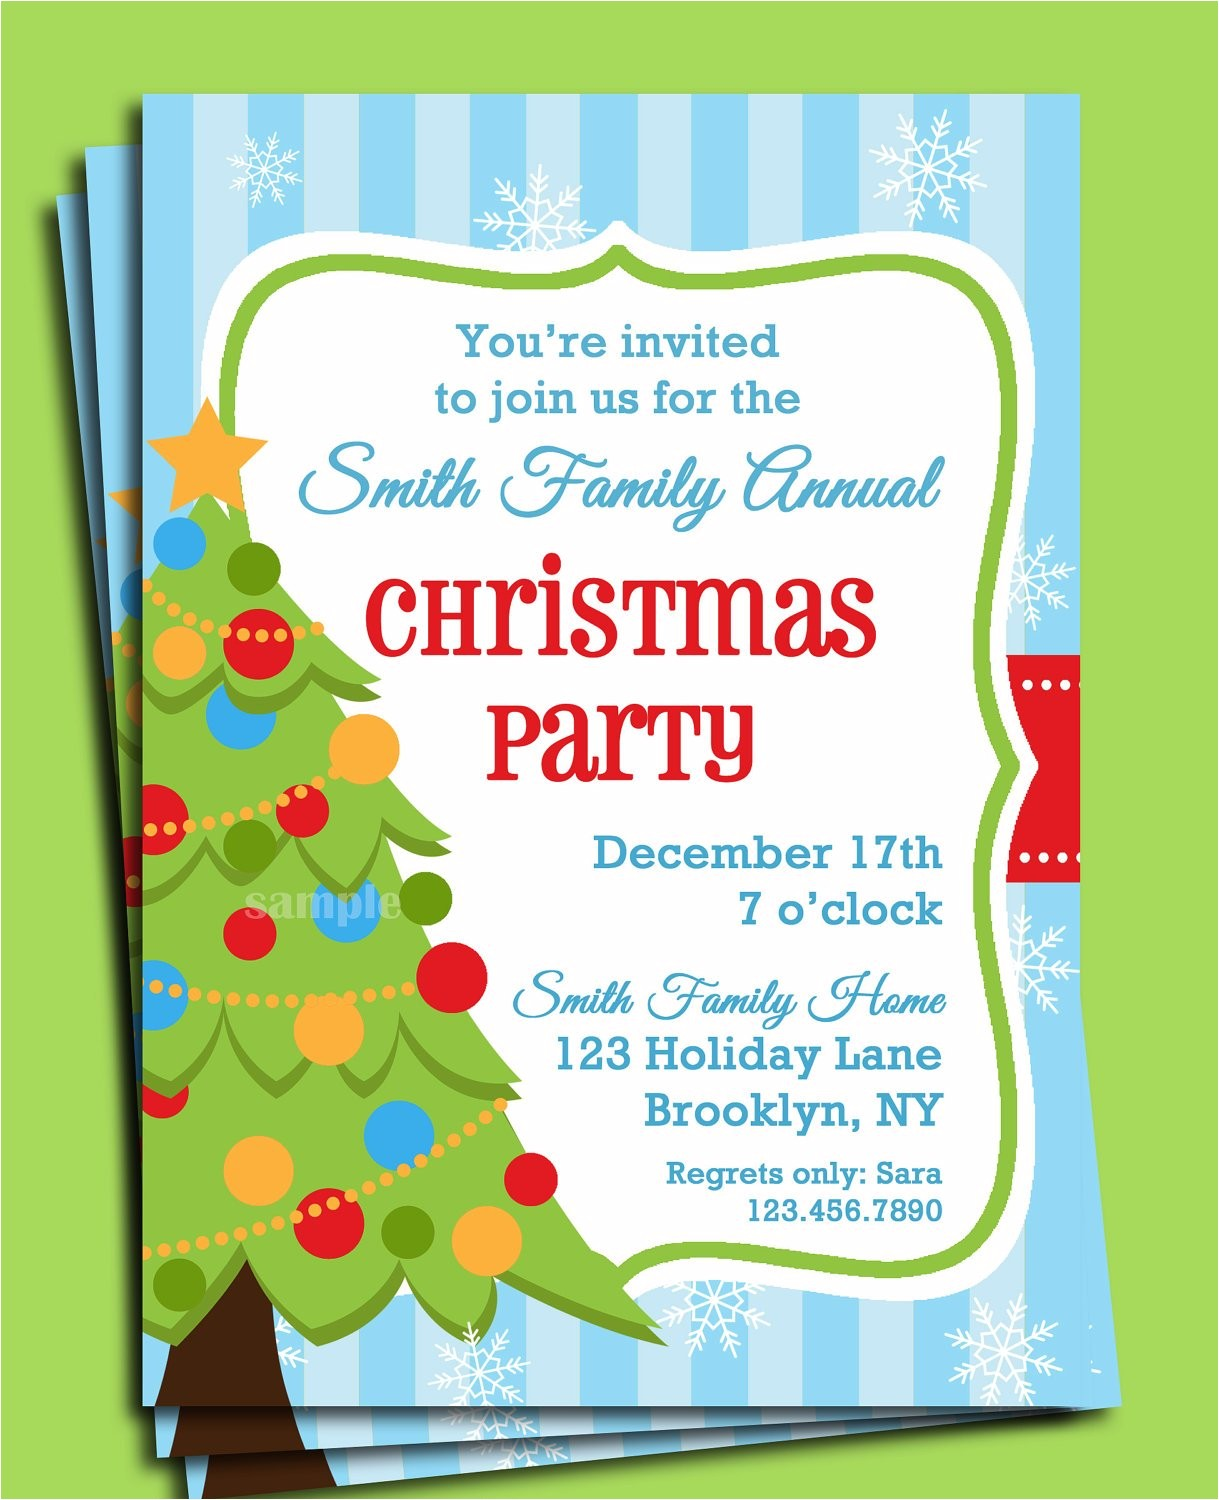 Order Christmas Party Invitations Christmas Party Invitation Printable Christmas Tree In Snow